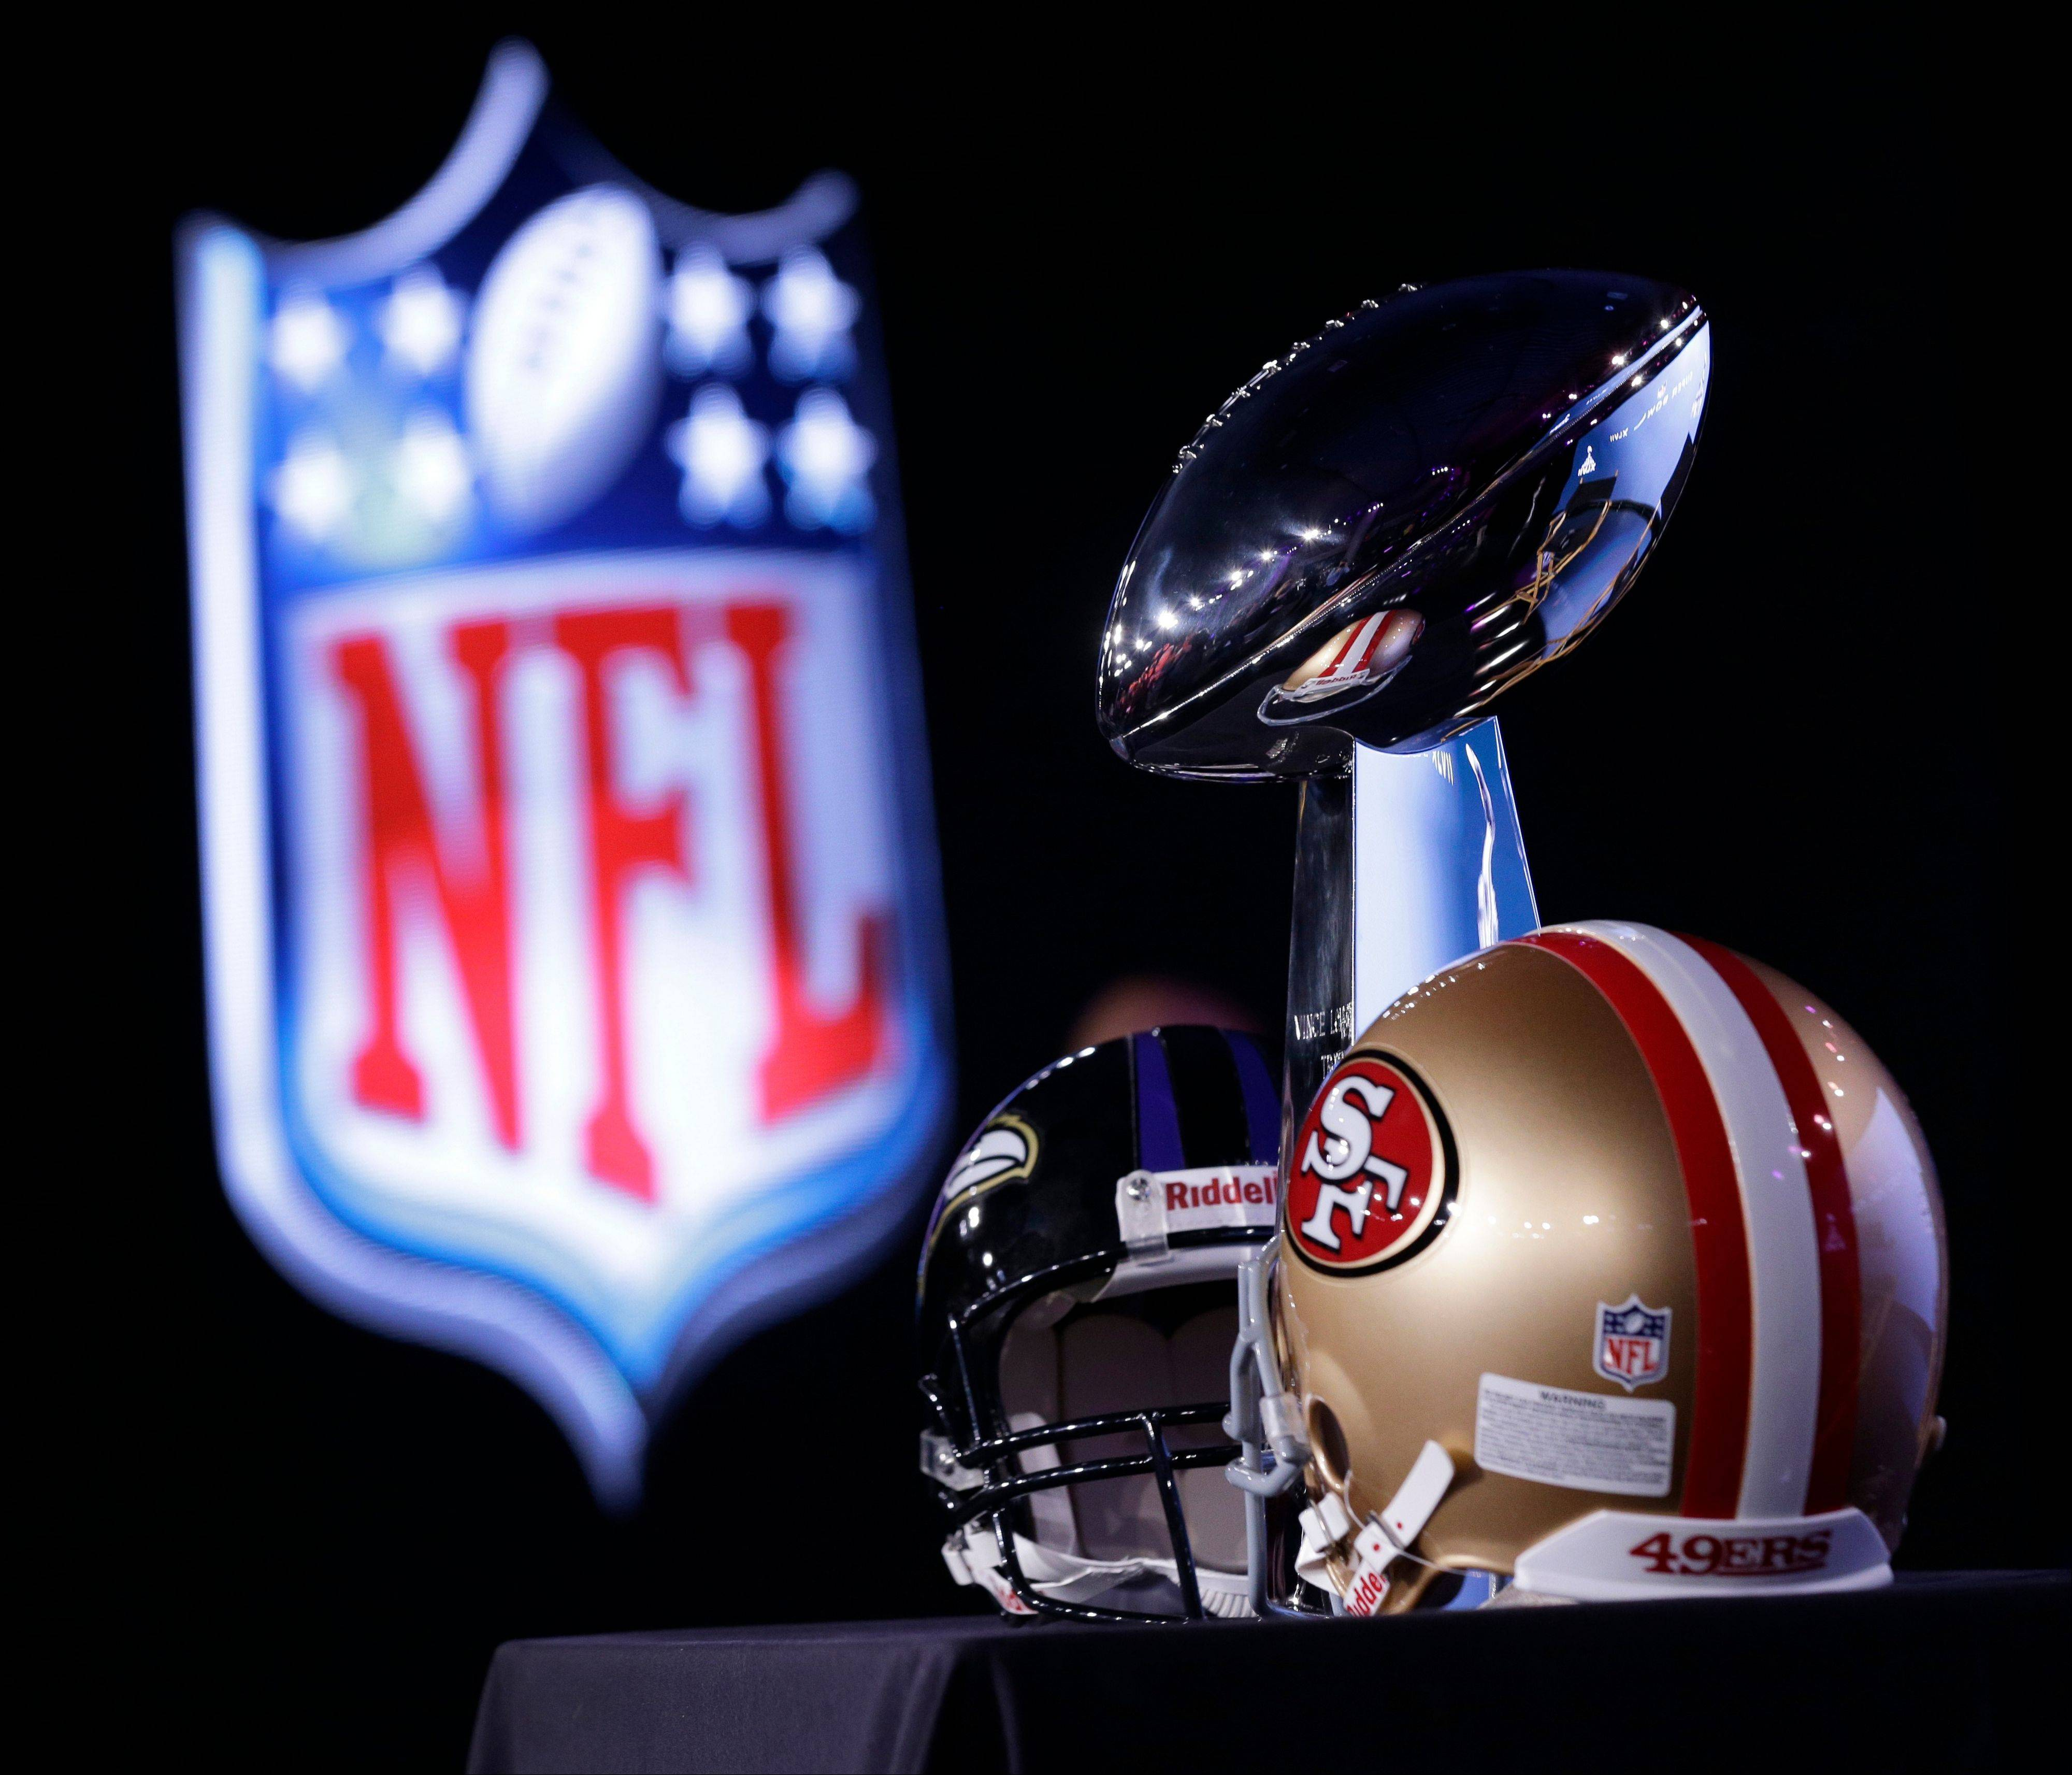 The San Francisco 49ers and Baltimore Ravens will kick off Super Bowl XLVII at 5:30 p.m. Sunday in New Orleans. Bob LeGere offers five keys to the game.